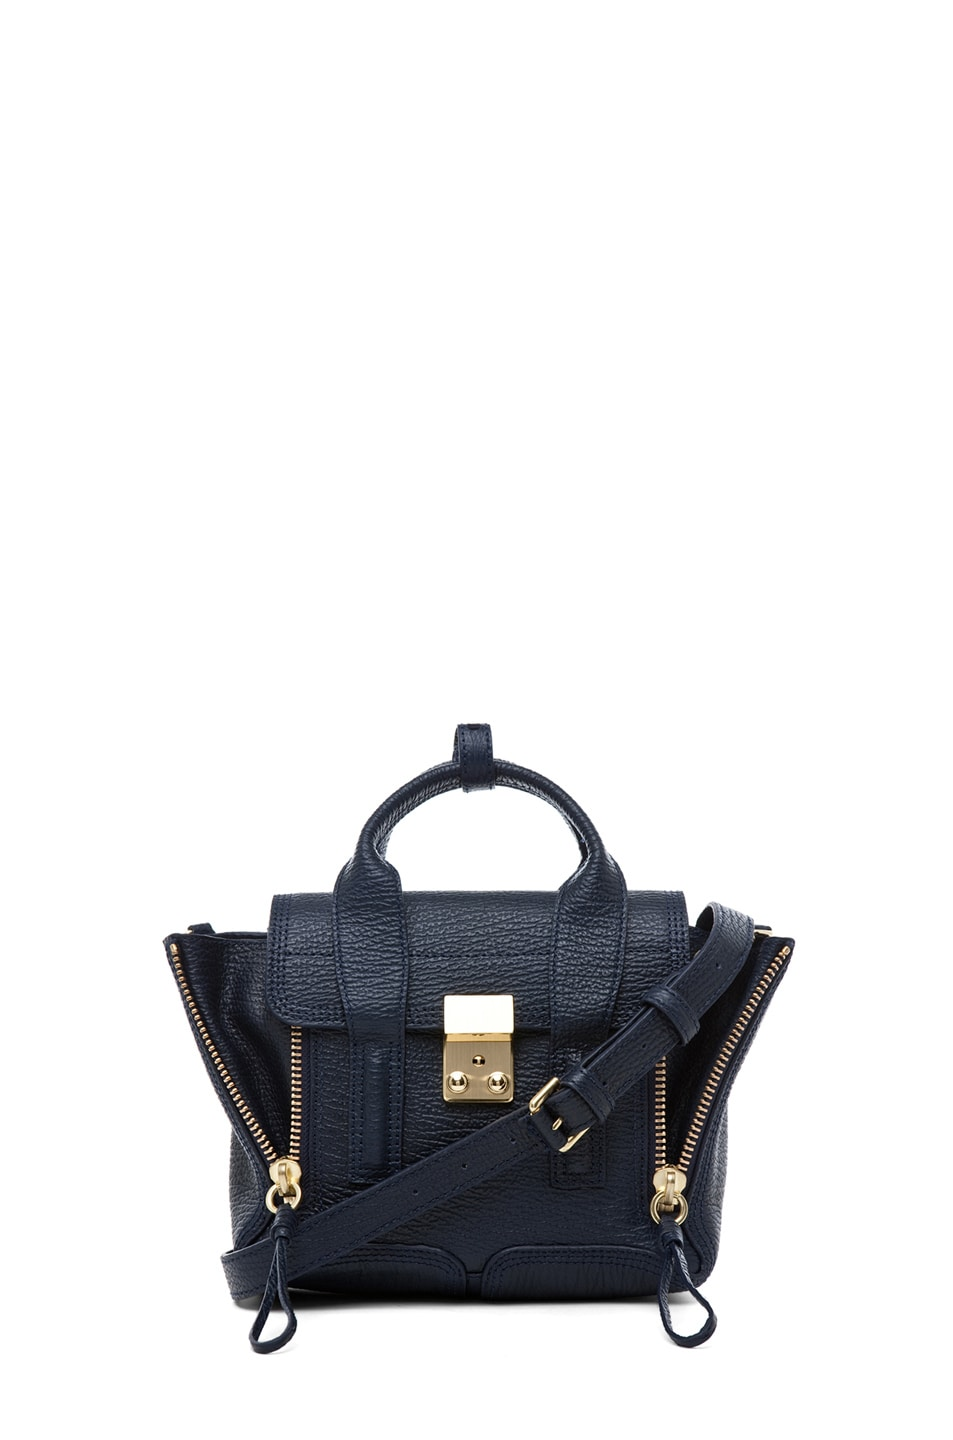 Image 1 of 3.1 phillip lim Mini Pashli Satchel in Ink